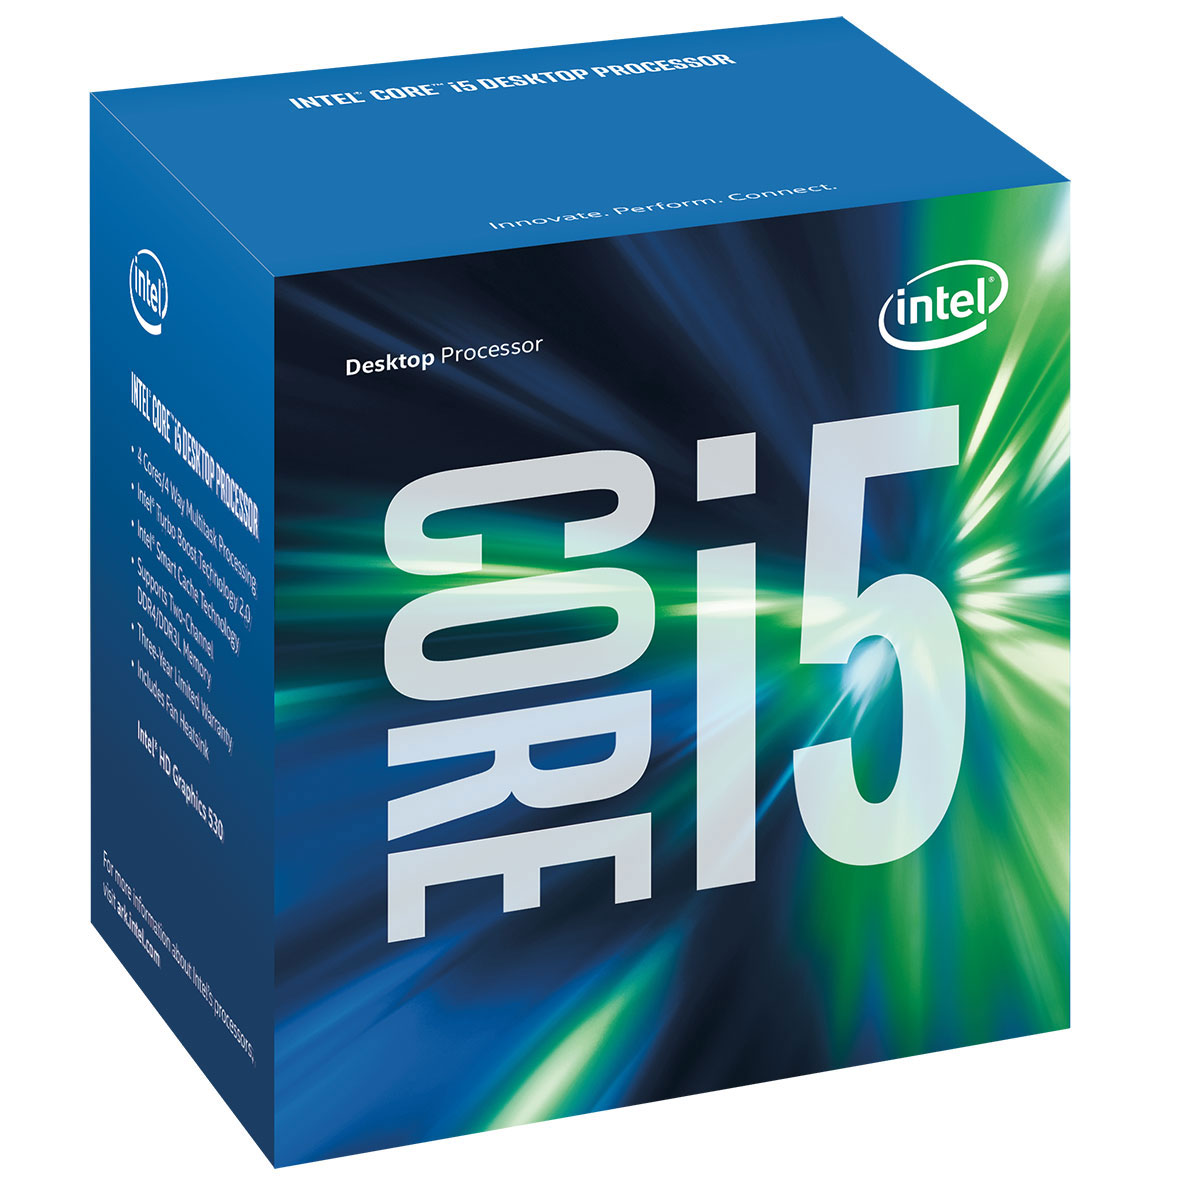 Processeur Intel Core i5-6600 (3.3 GHz) Processeur Quad Core Socket 1151 Cache L3 6 Mo Intel HD Graphics 530 0.014 micron (version boîte - garantie Intel 3 ans)